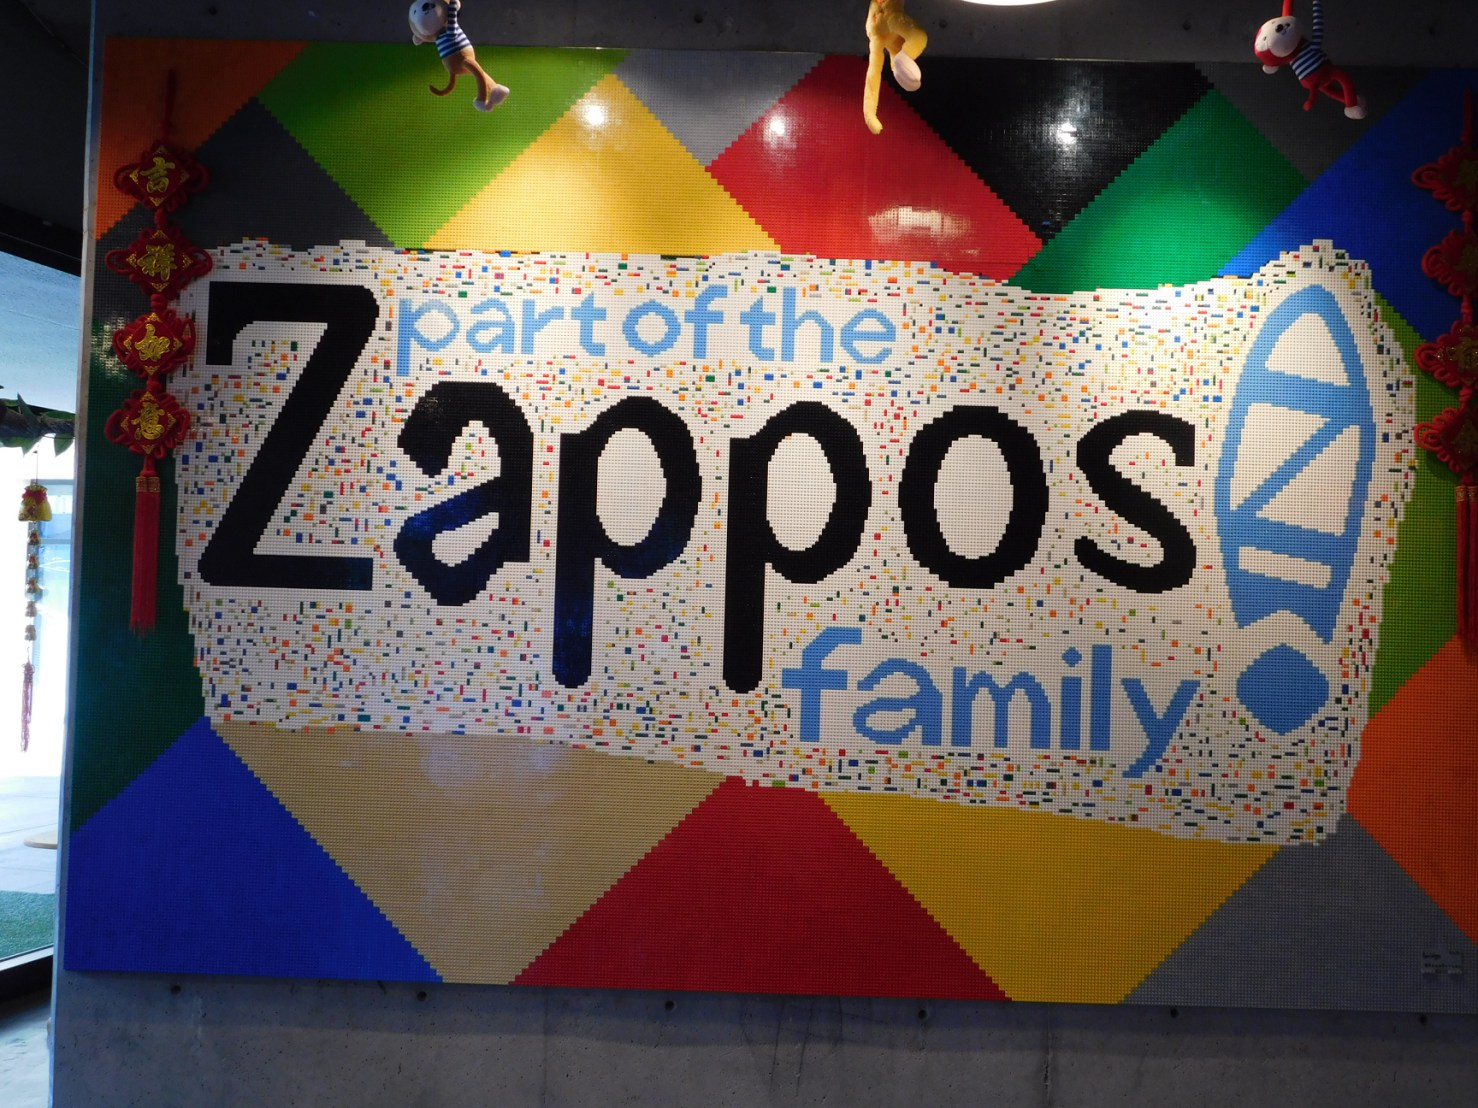 Zapposラスベガス本社見学ツアー